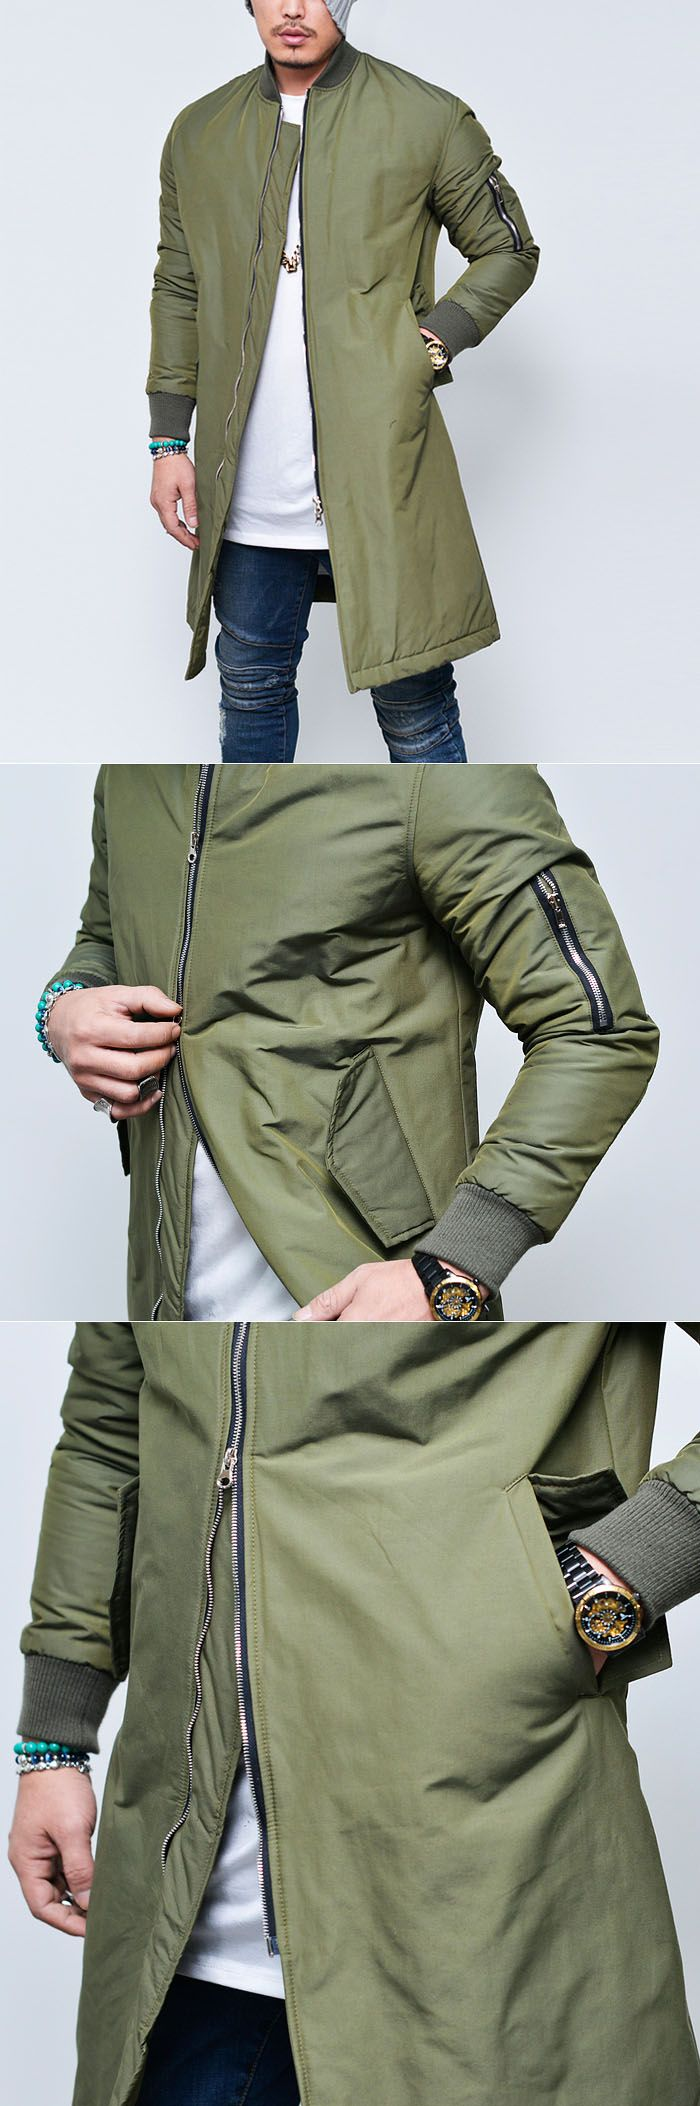 Outerwear :: 4oz Fill Cargo Pocket Long Flight-Jacket 114 - Mens Fashion Clothing For An Attractive Guy Look